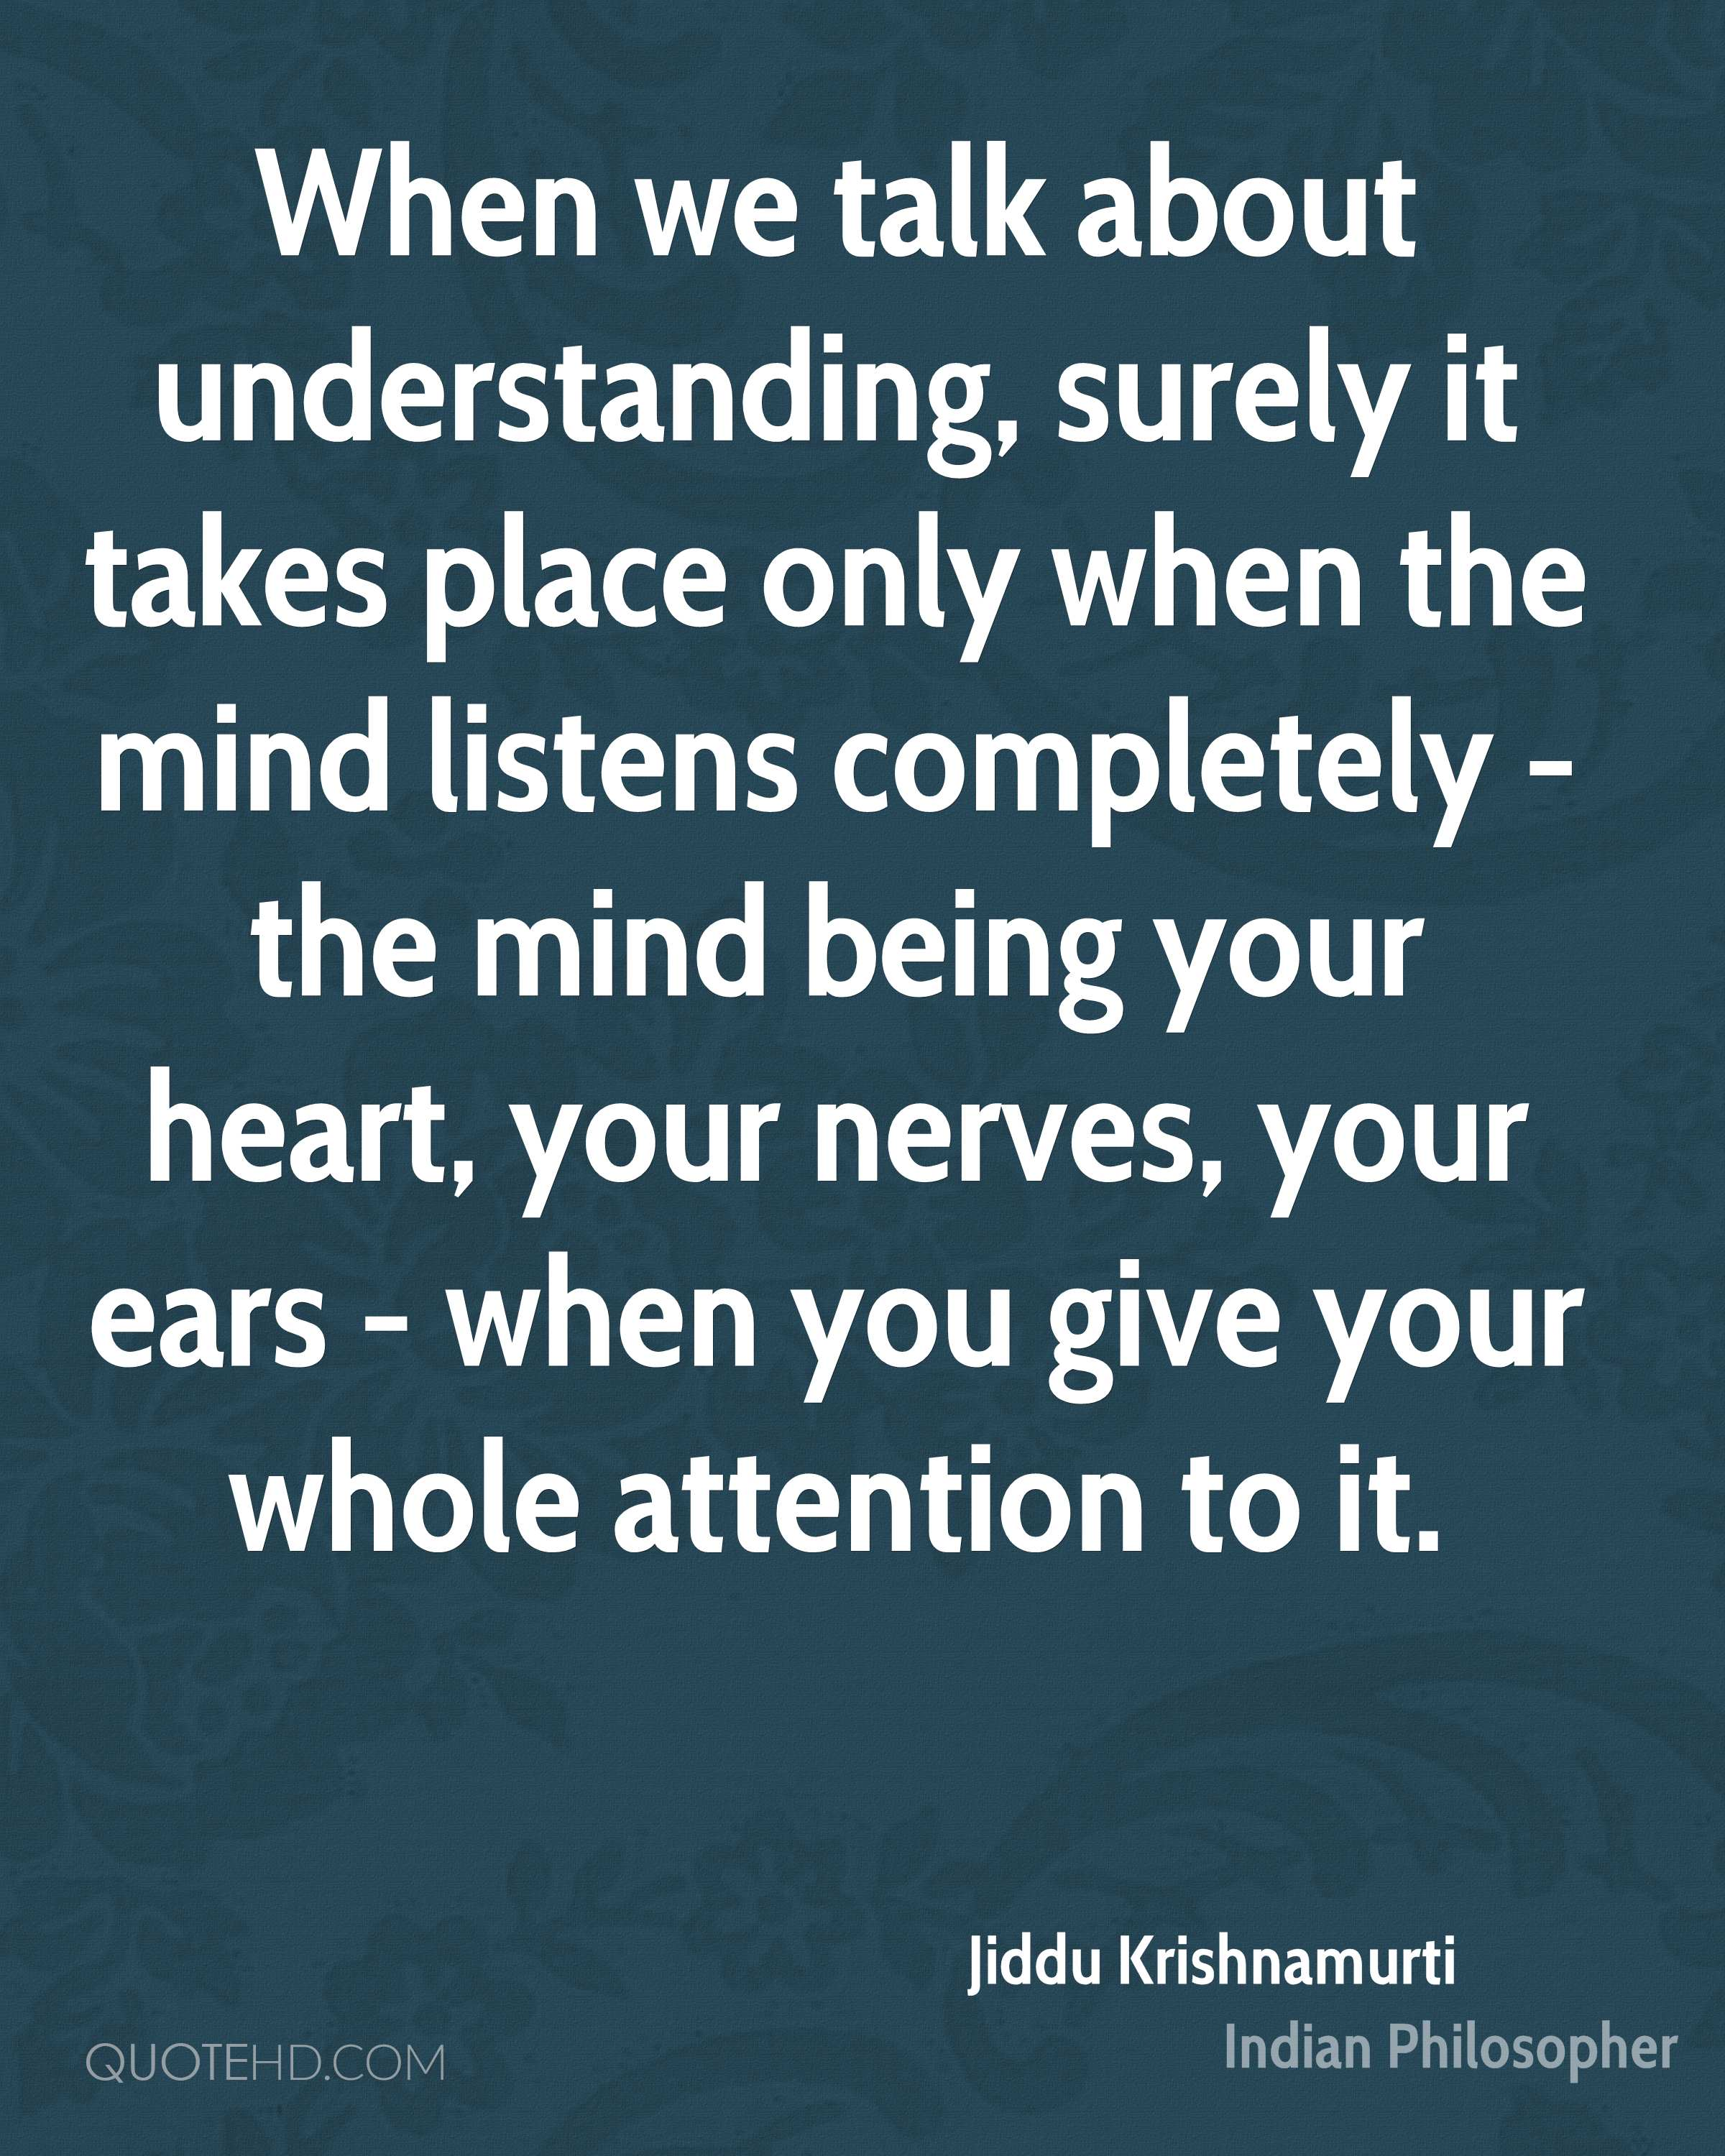 When we talk about understanding, surely it takes place only when the mind listens completely - the mind being your heart, your nerves, your ears - when you give your whole attention to it.